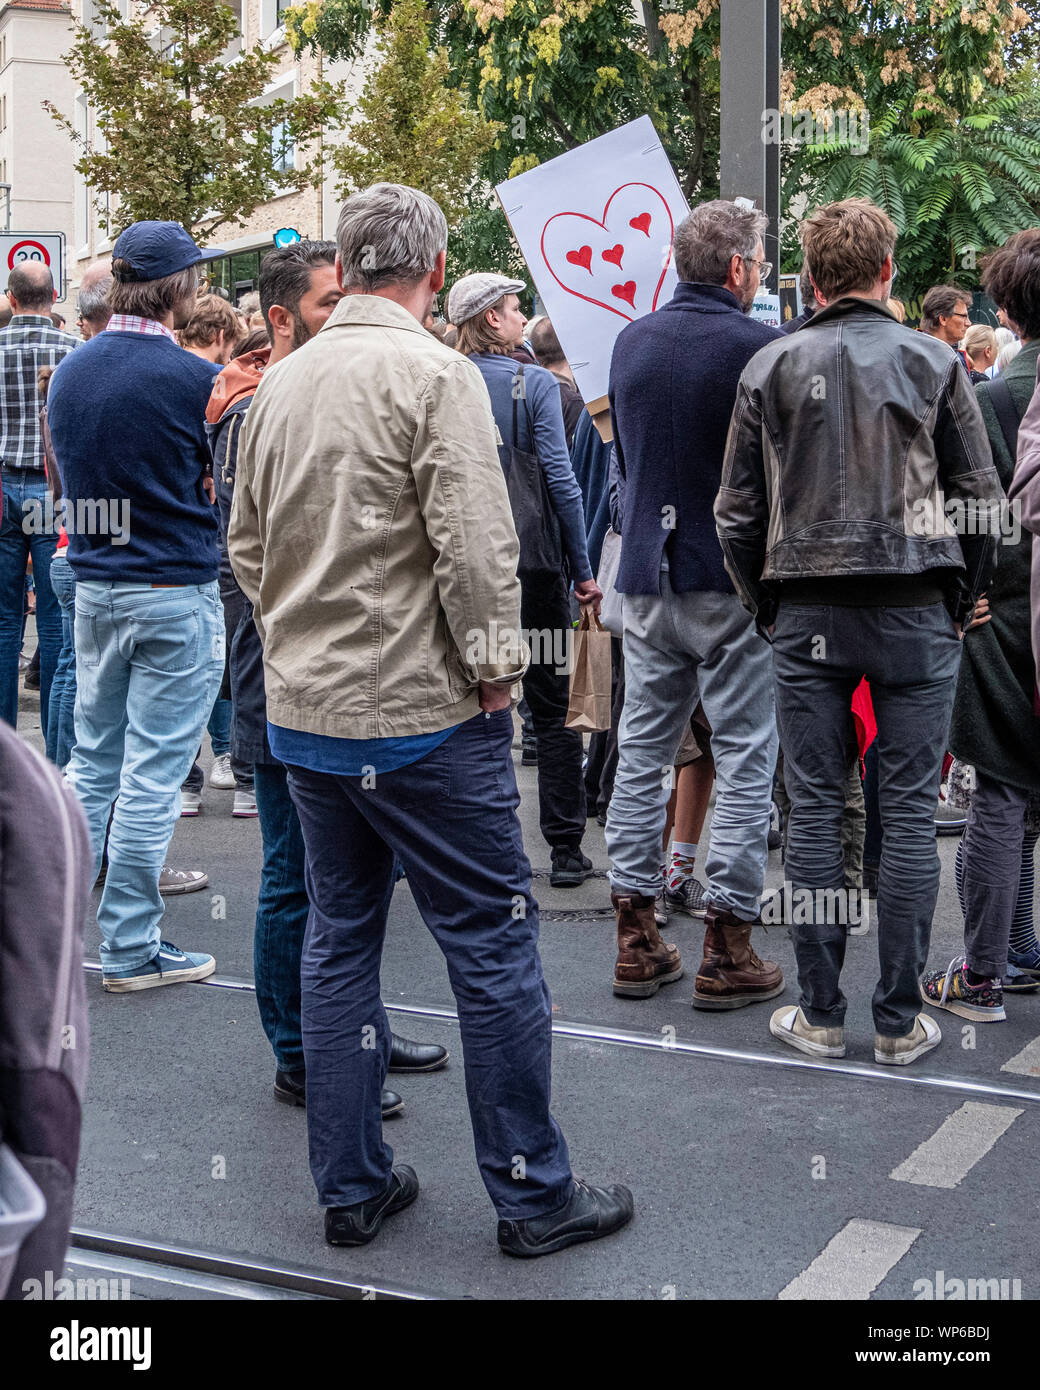 Germany, Berlin, Cnr. Invalidenstrasse & Ackerstrasse. 7th September 2019.Vigil for four people killed in accident as a Porche SUV ploughed onto sidewalk of Friday evening. Berliners gathered to mourn the dead and bring flowers & candles to the site of the accident. There was also a call for SUV vehicles to be restricted in the city and for a new speed limit. credit: Eden Breitz/Alamy Stock Photo